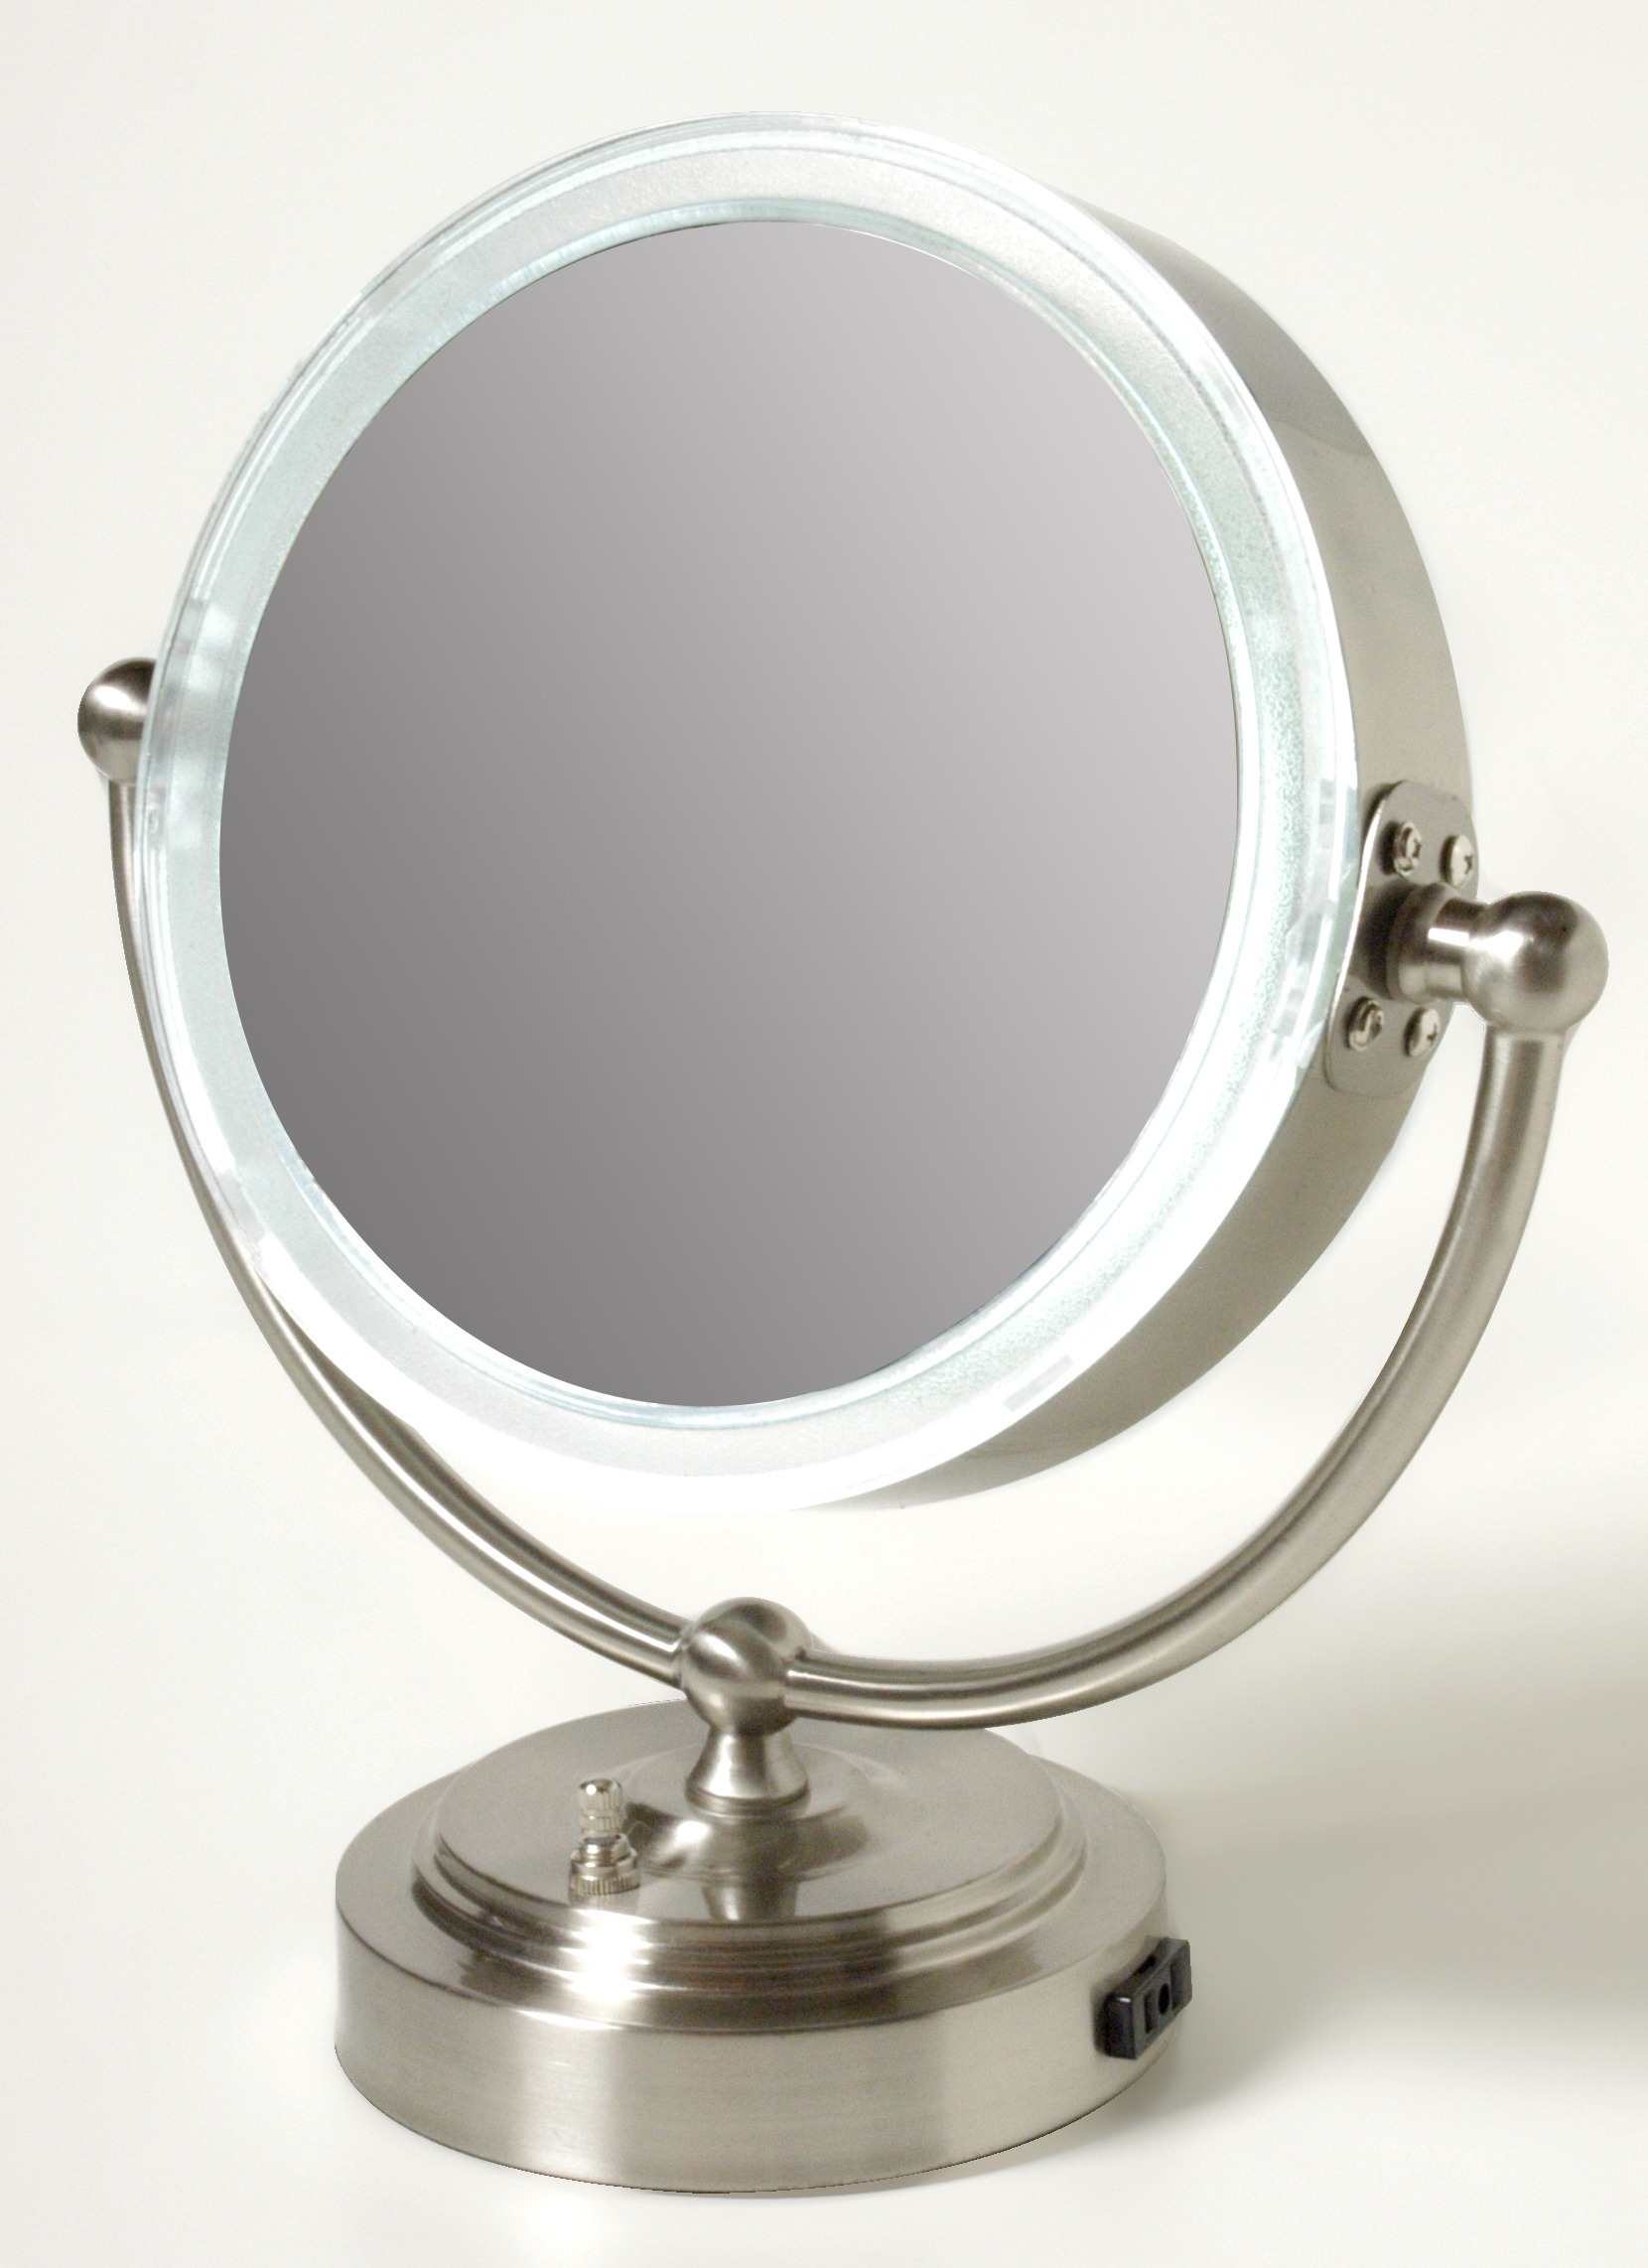 Lighted Makeup Mirror Wall Mounted Double Sided Lighted Makeup Mirror Wall Mounted Double Sided furniture pretty design of lighted makeup mirror for home 1660 X 2284